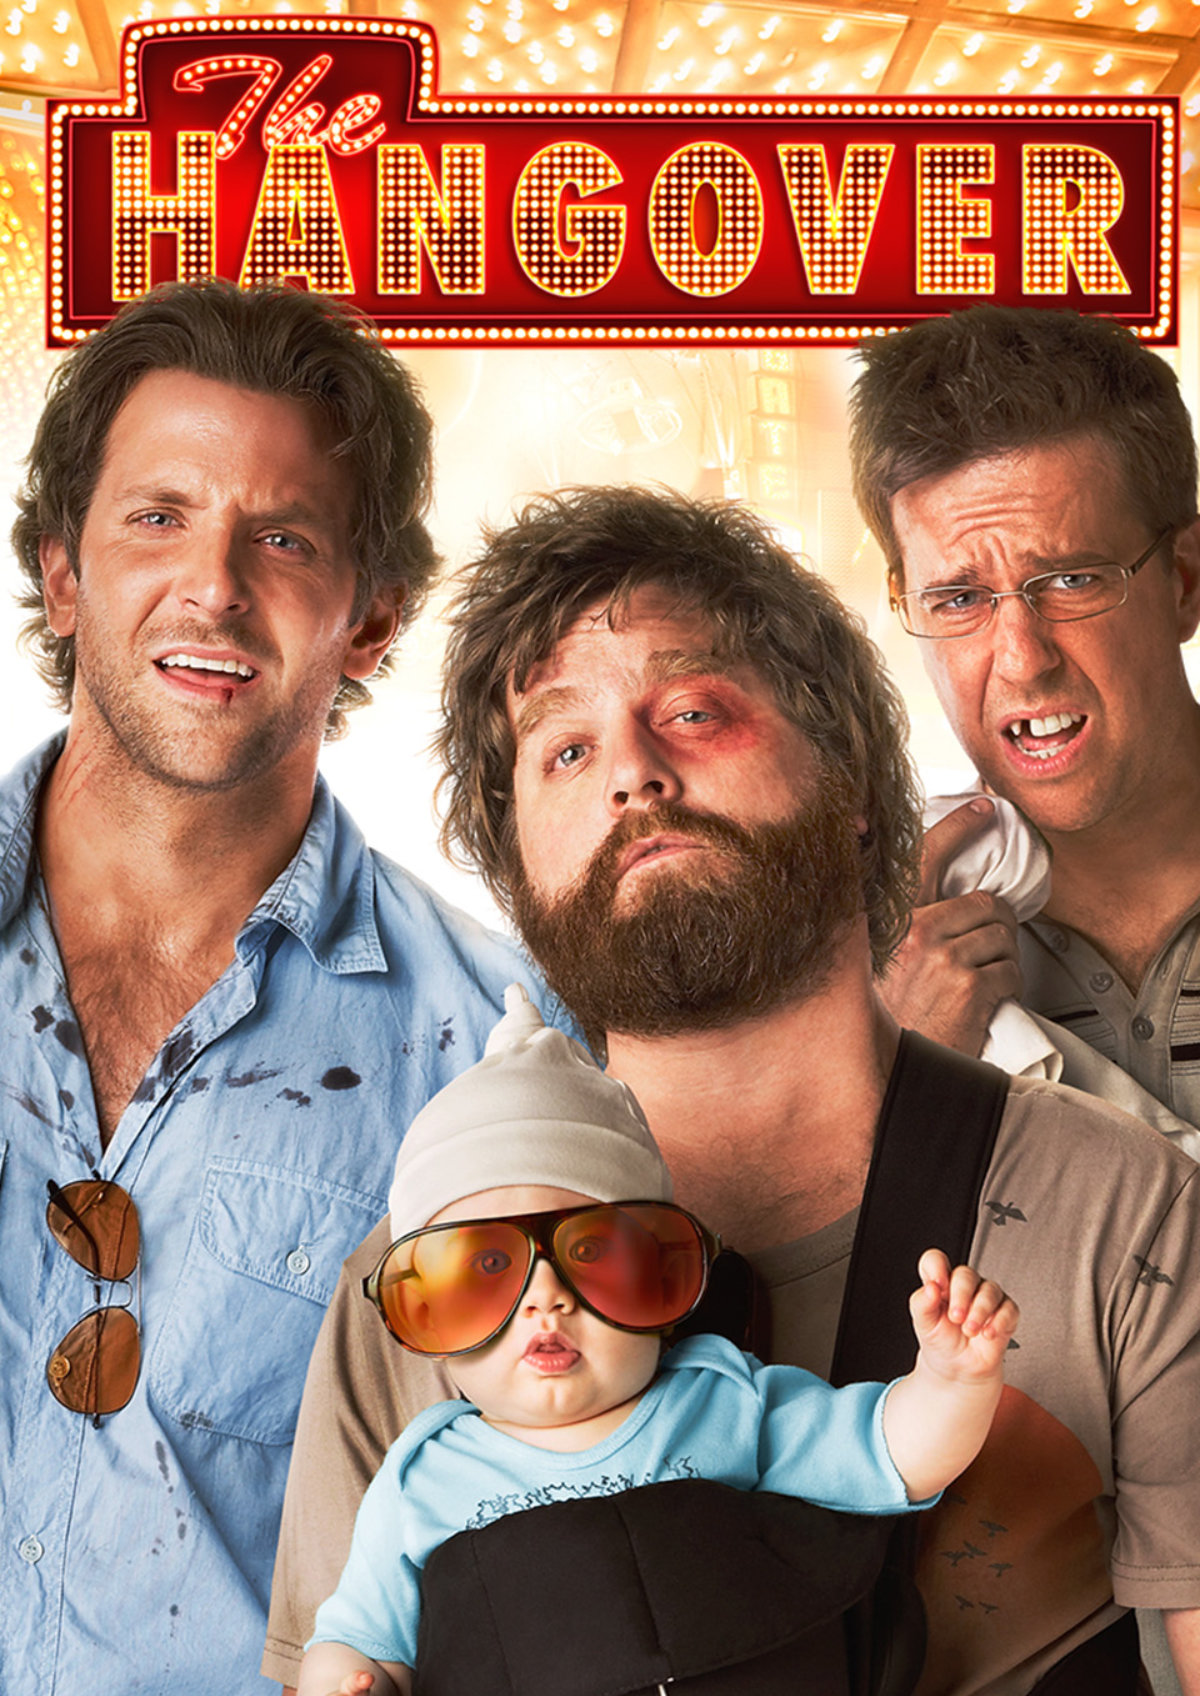 'The Hangover' movie poster